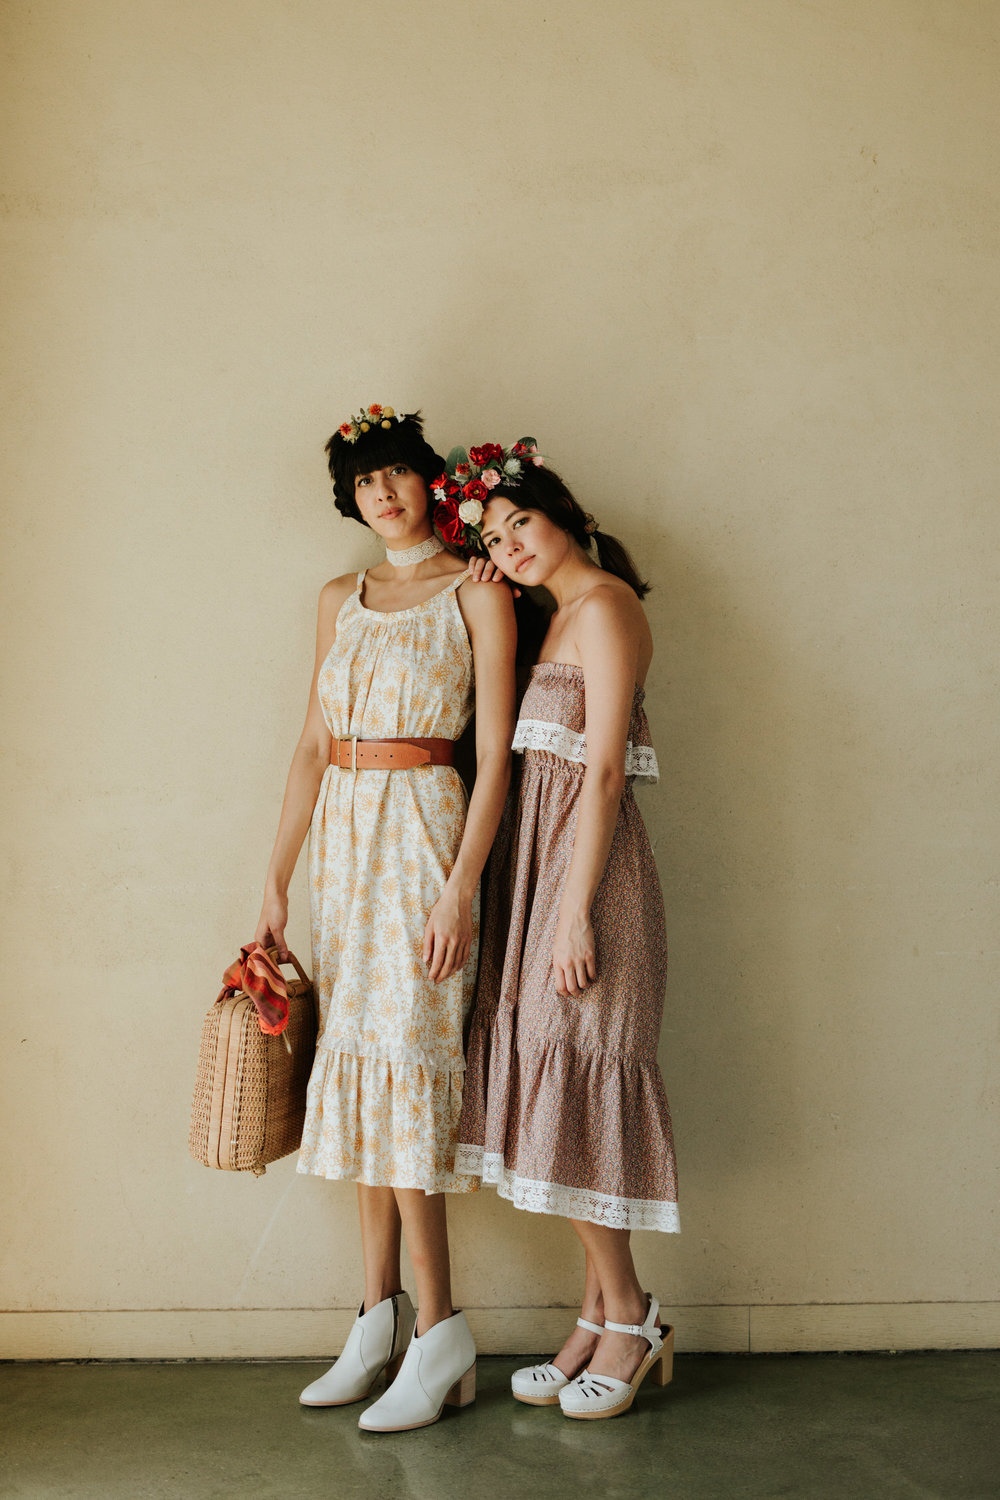 Two women in Rat Des Champs vintage and flower crowns